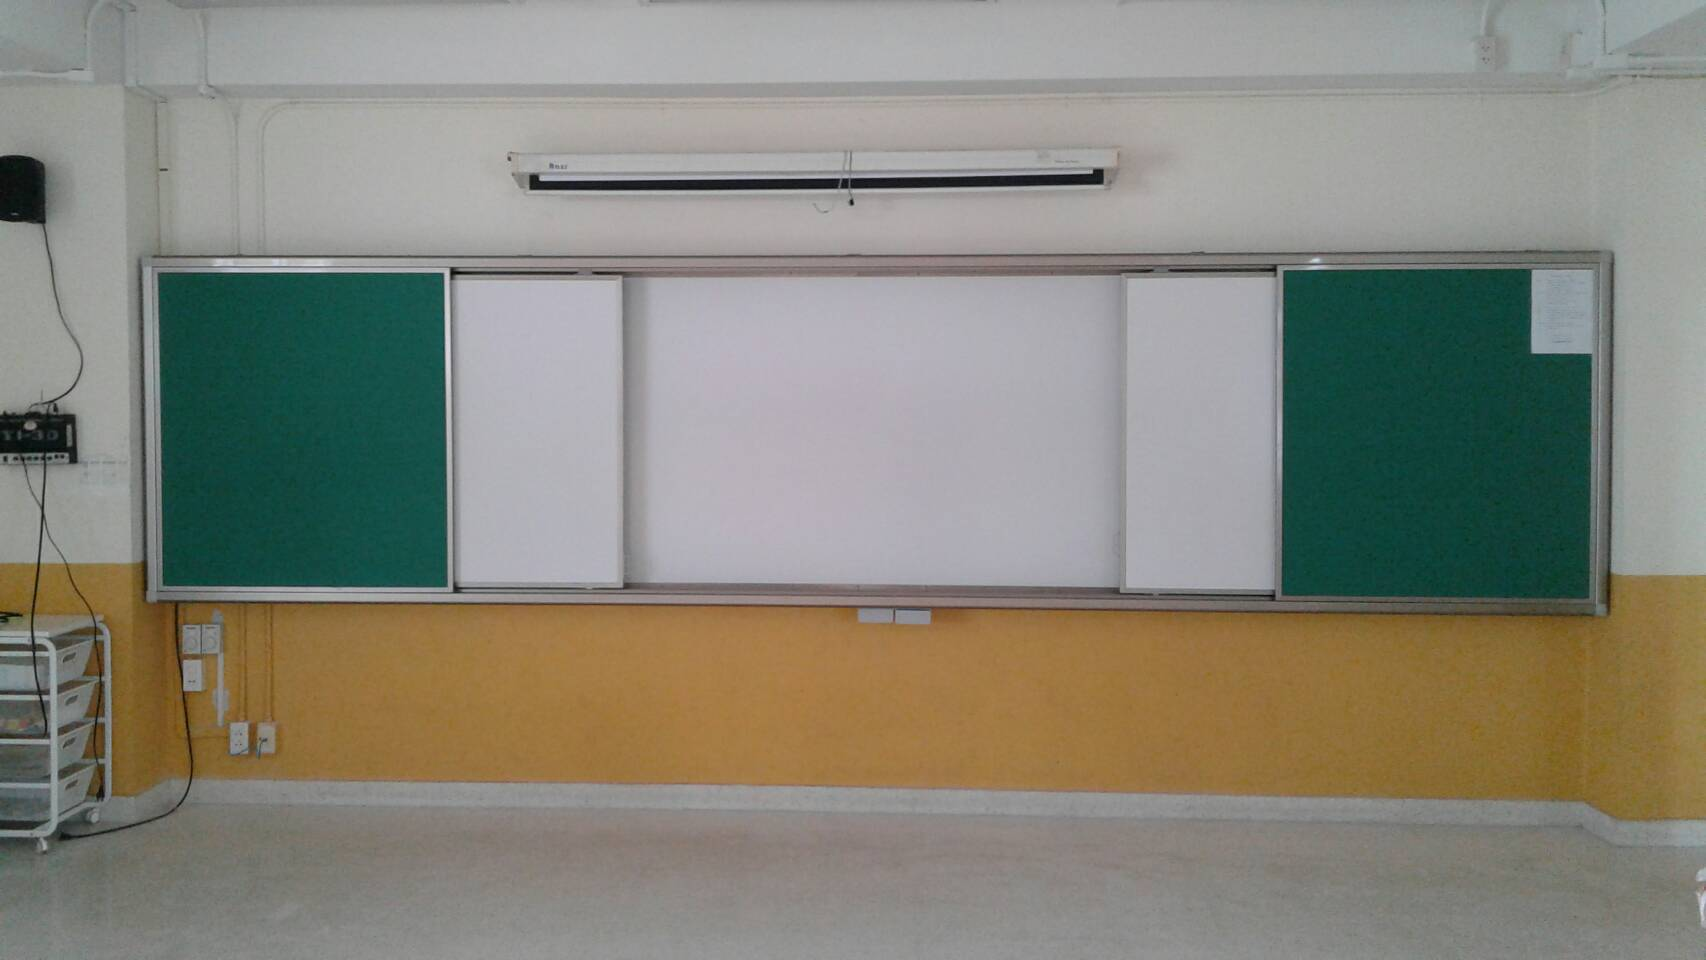 Multipurpose Board for School